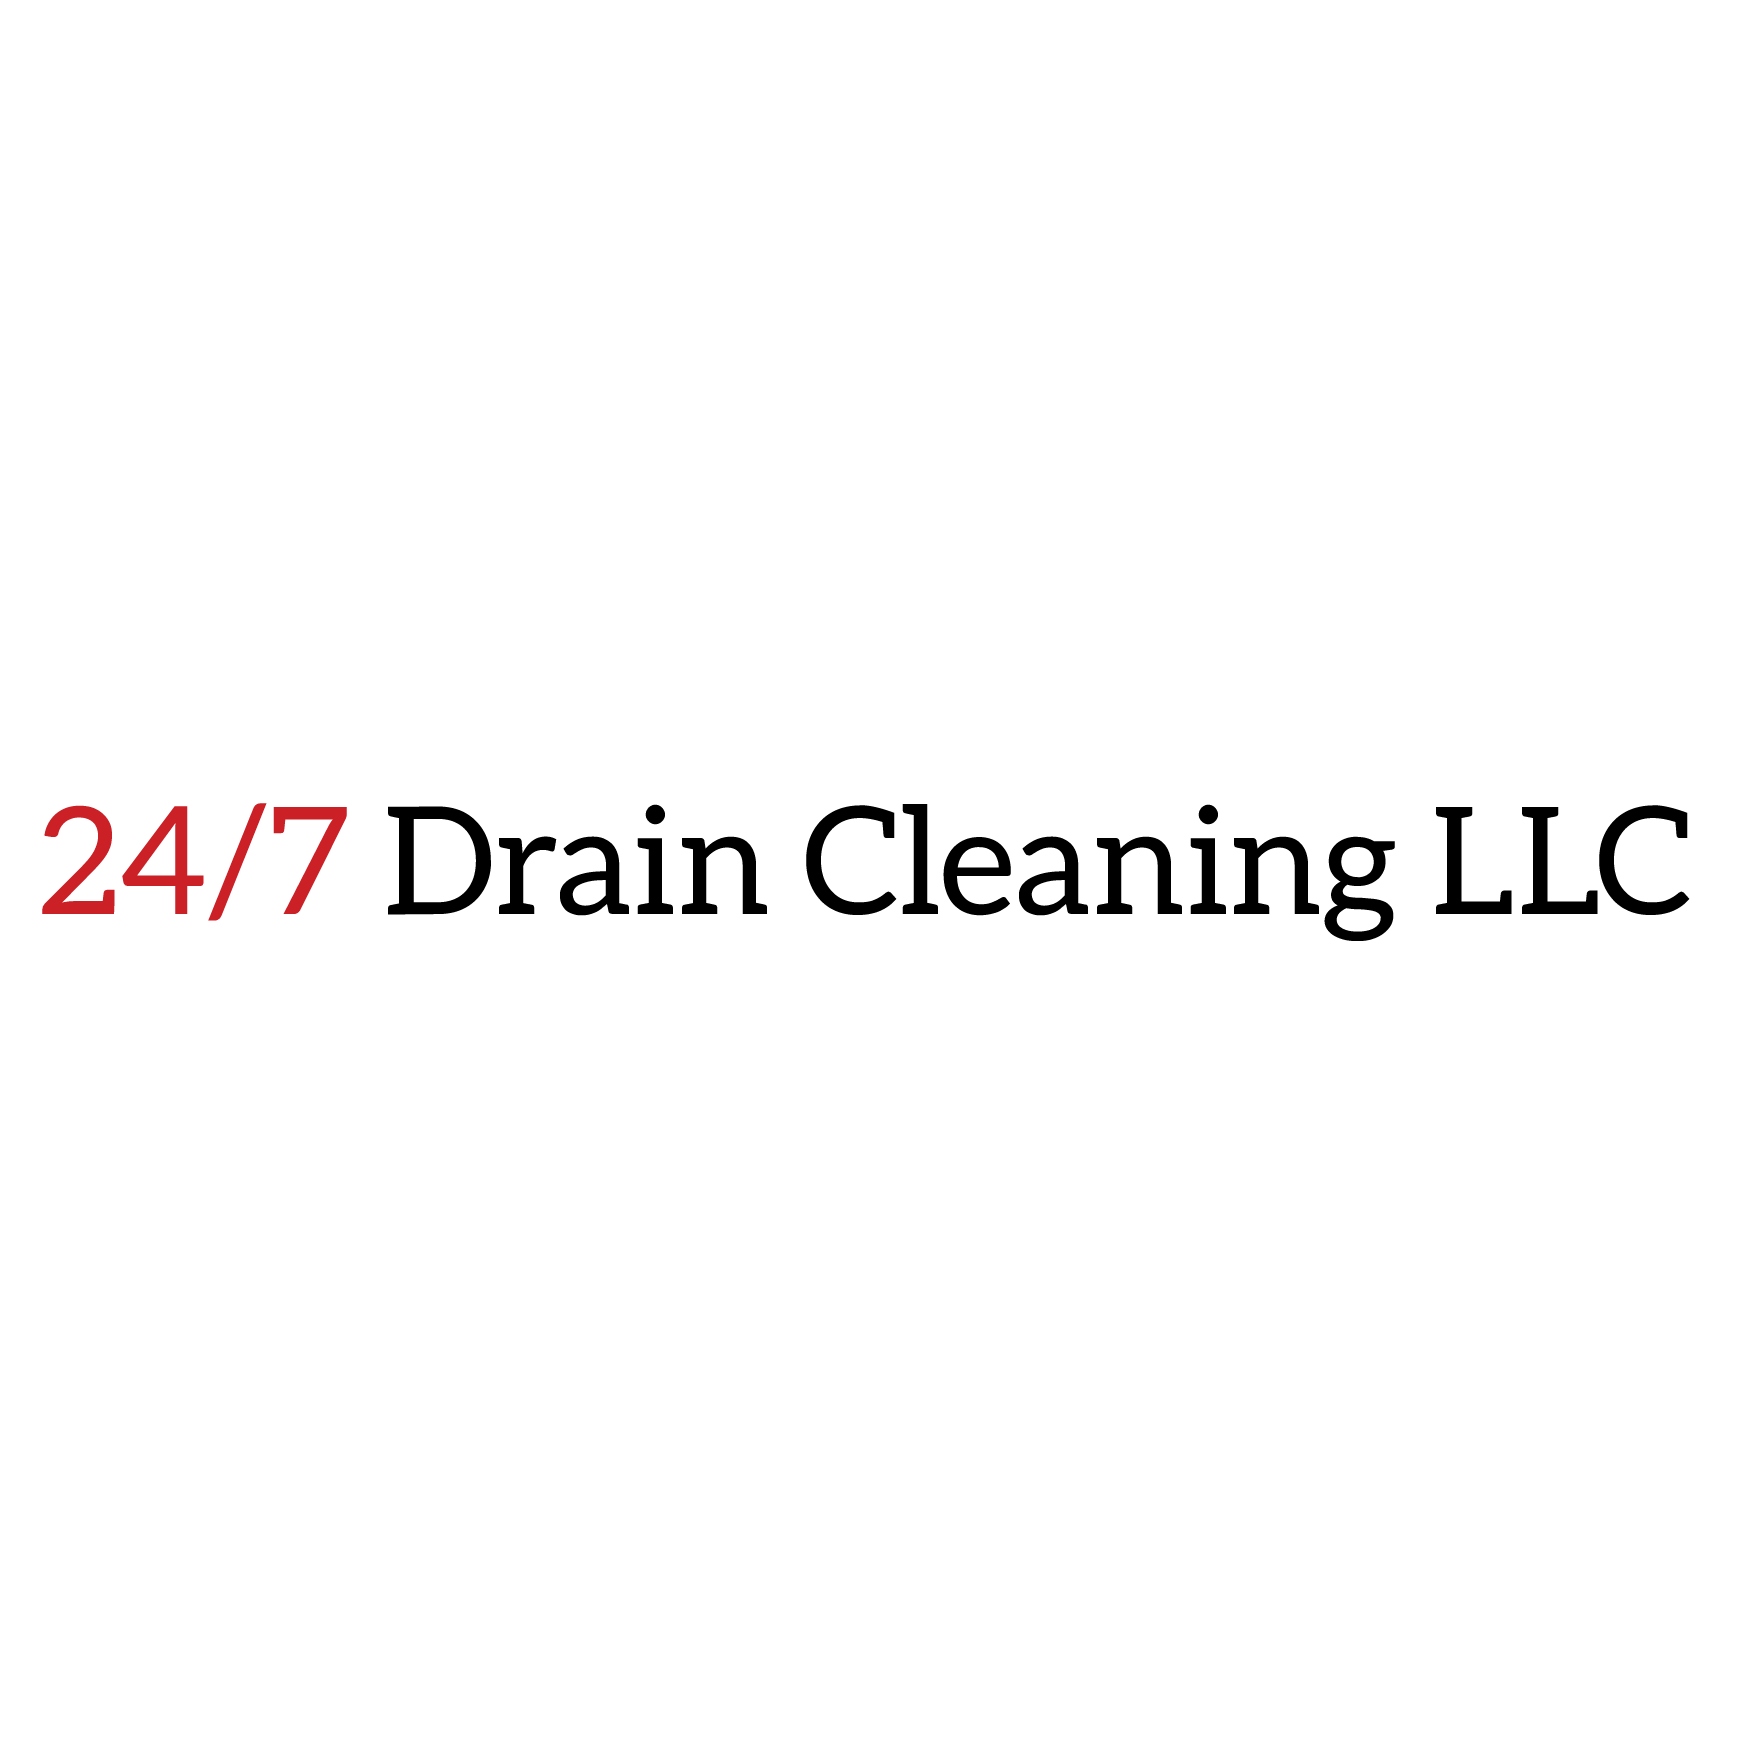 24/7 Drain Cleaning LLC